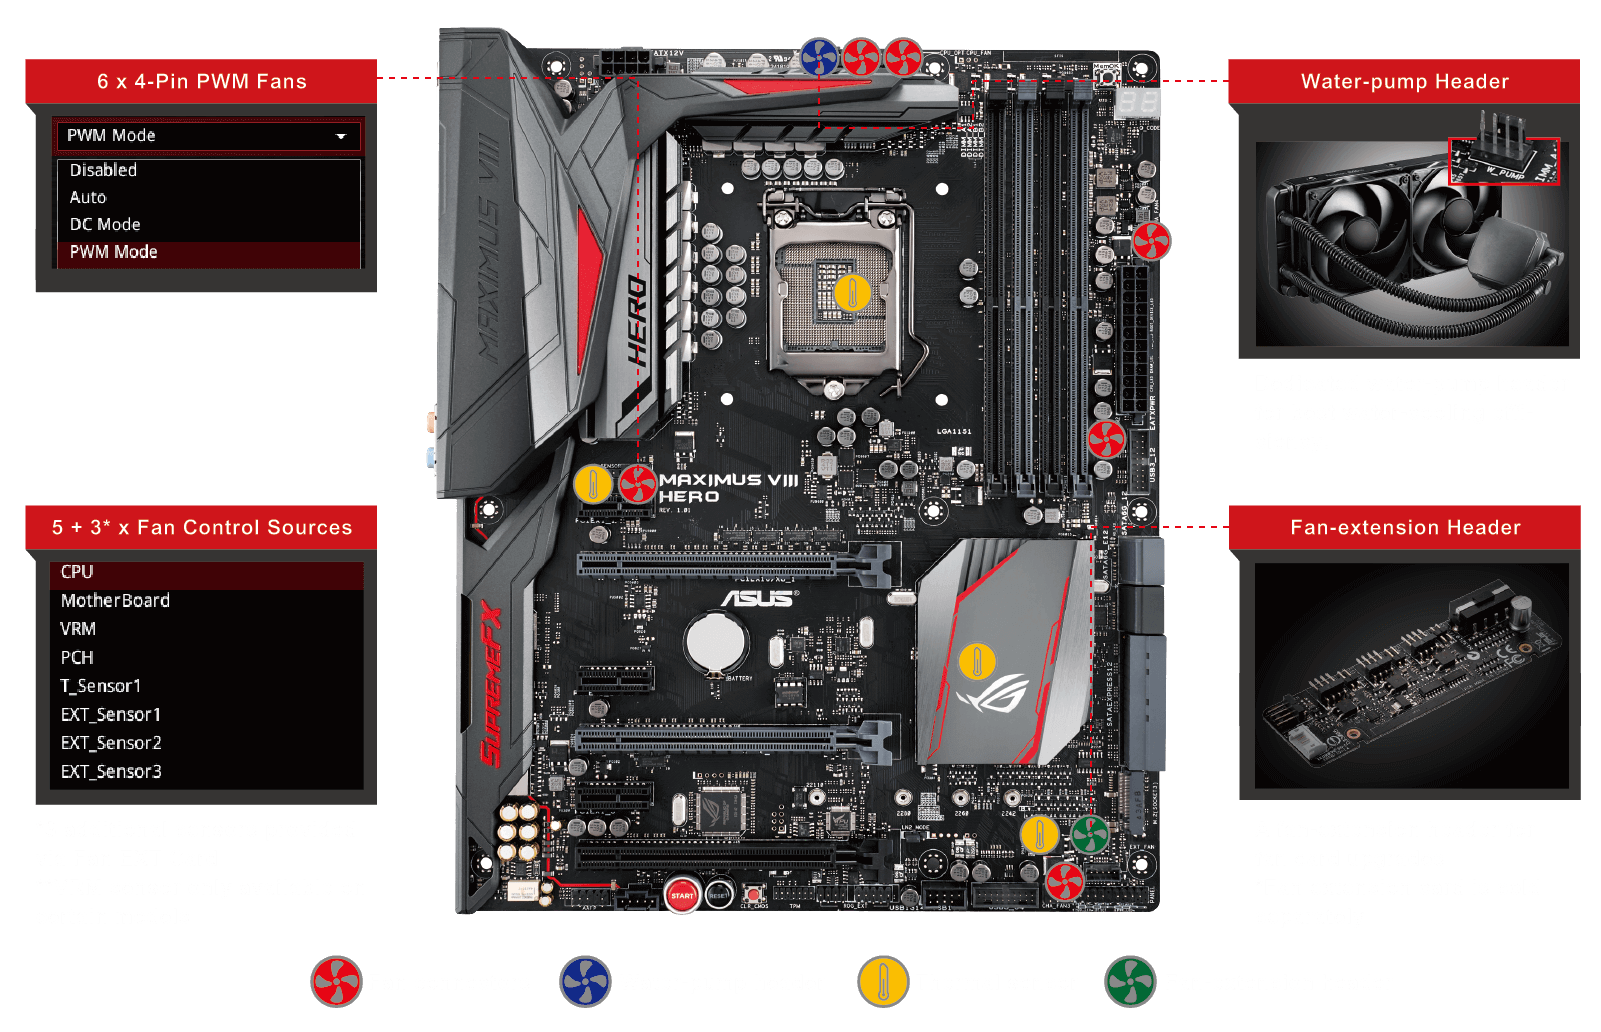 did try move asus rog whetstone hero viii maximus would want film